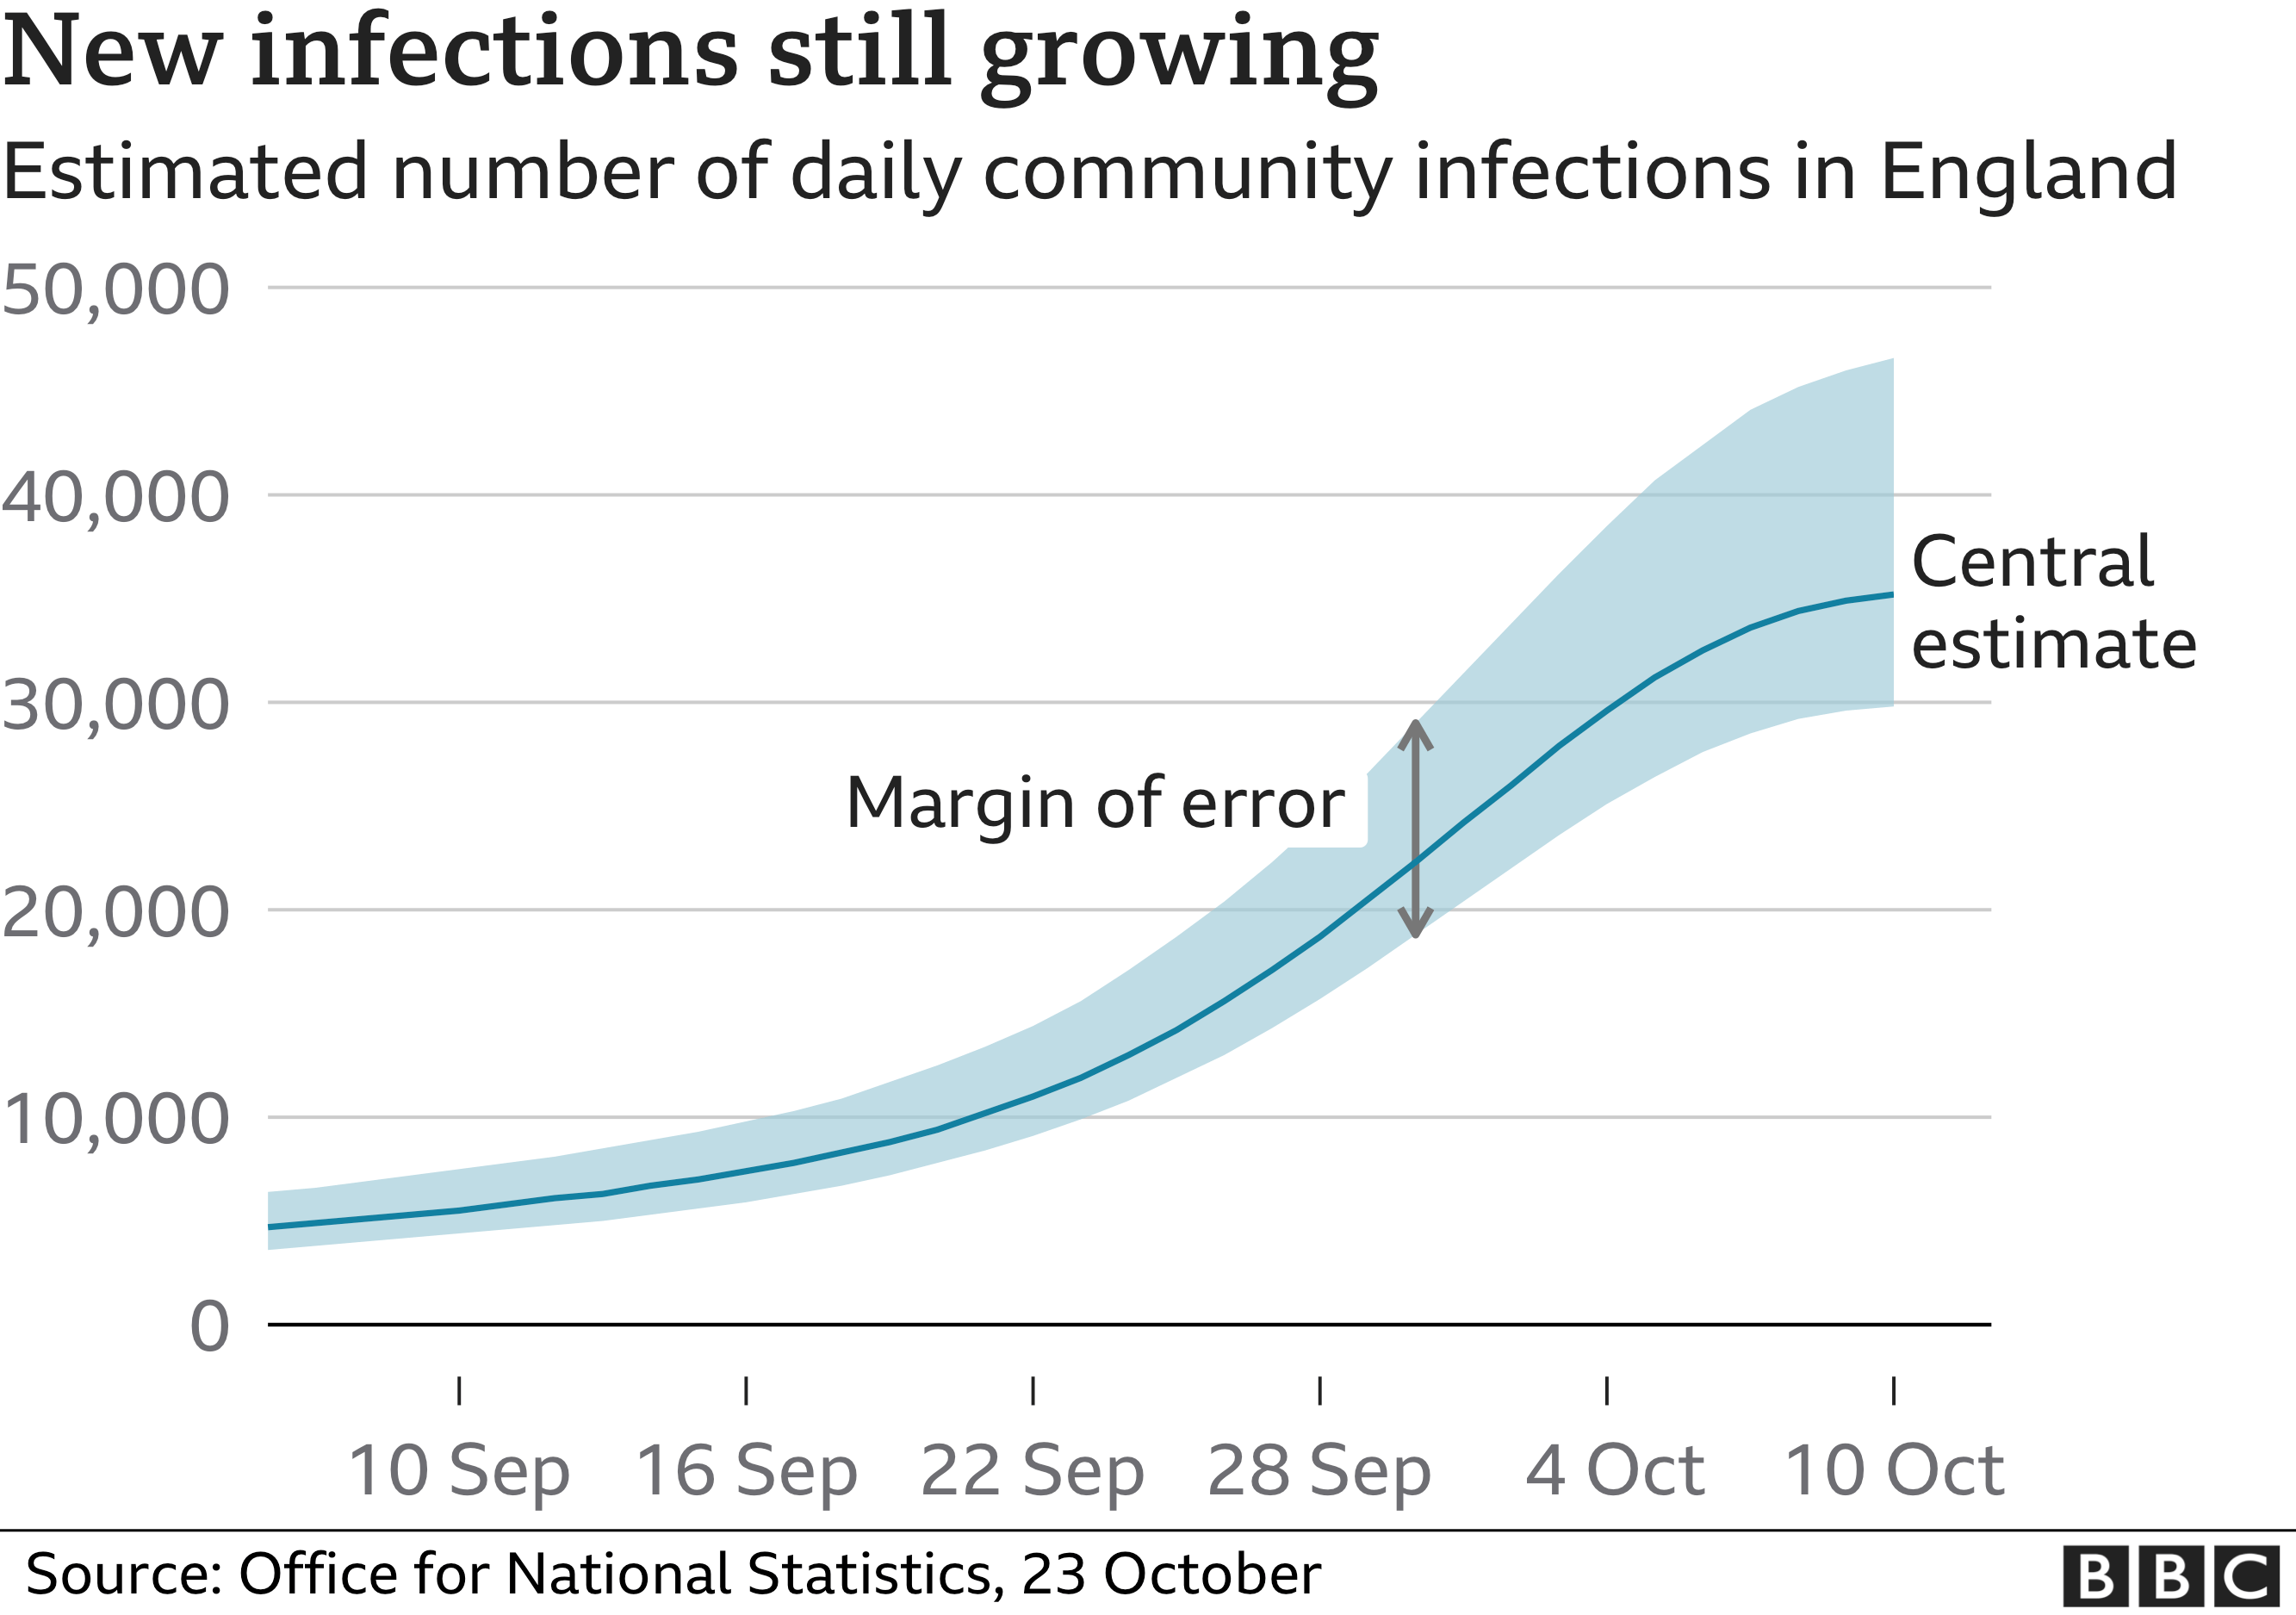 Chart showing growth of new infections